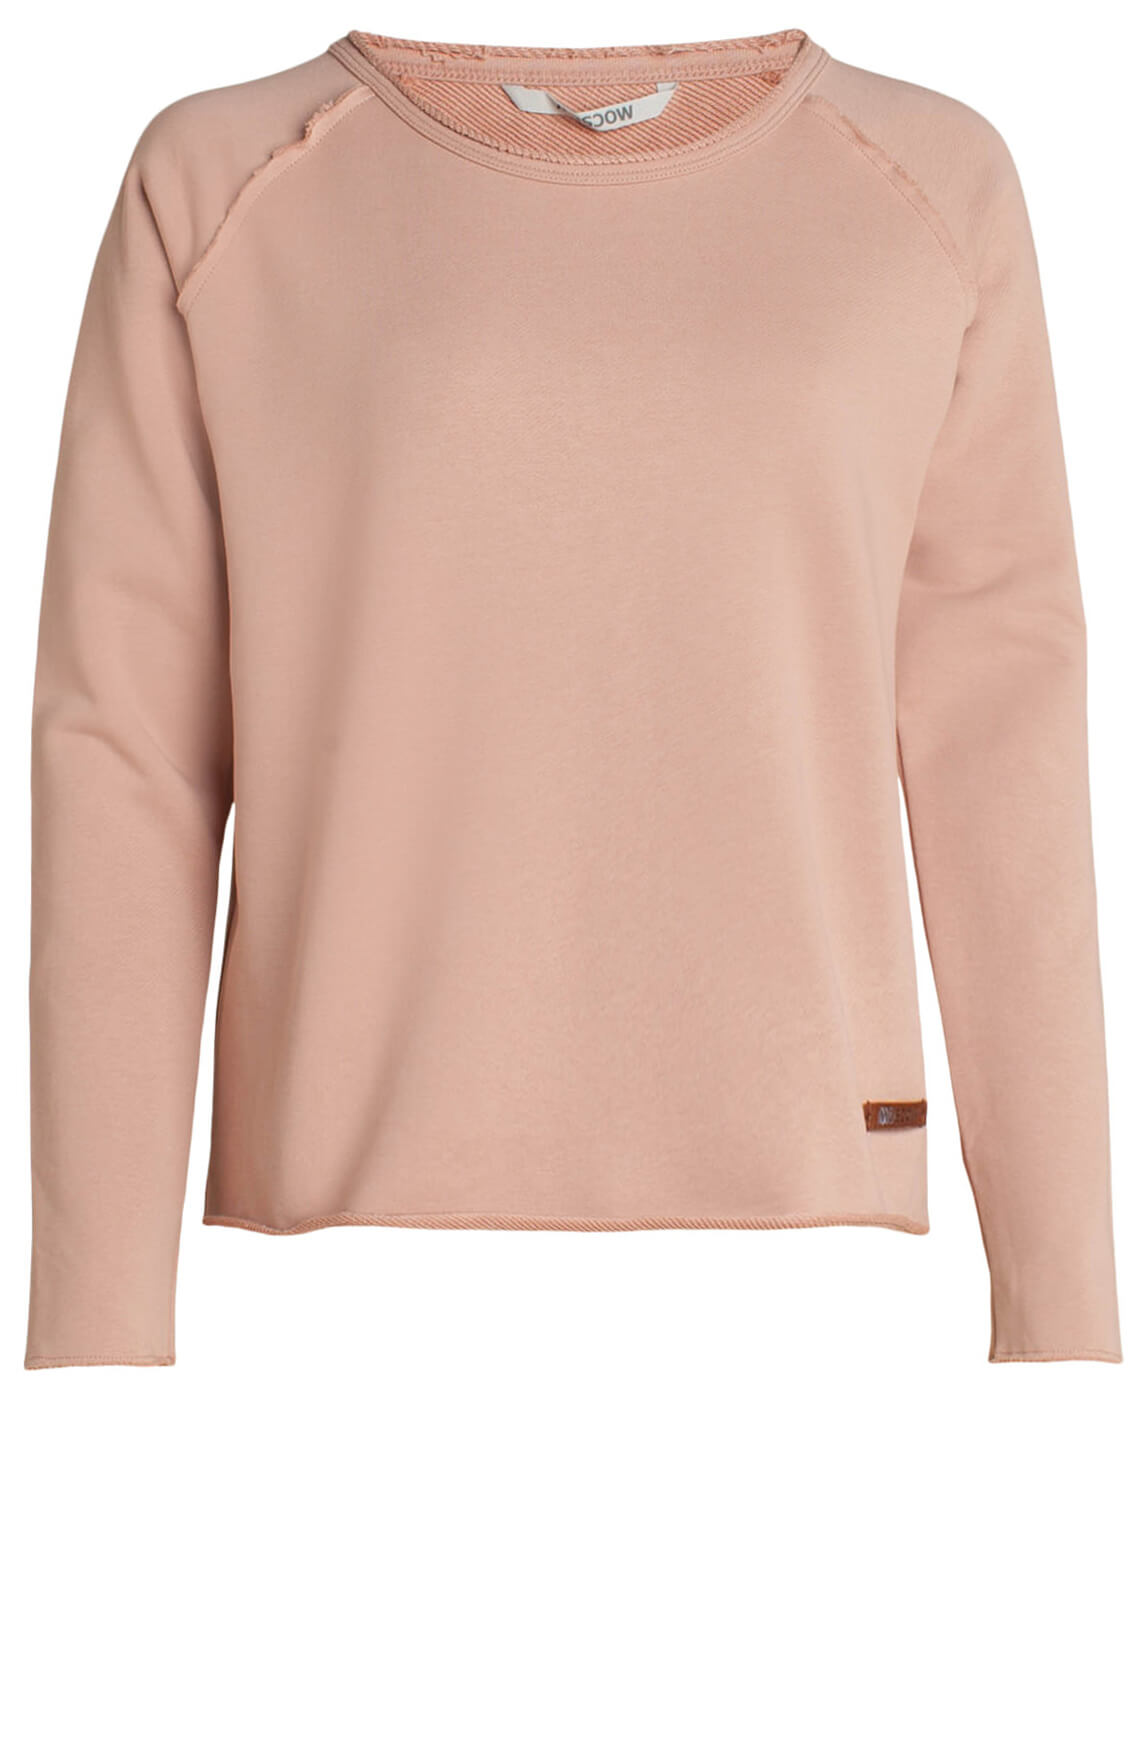 Moscow Dames Sweater roze